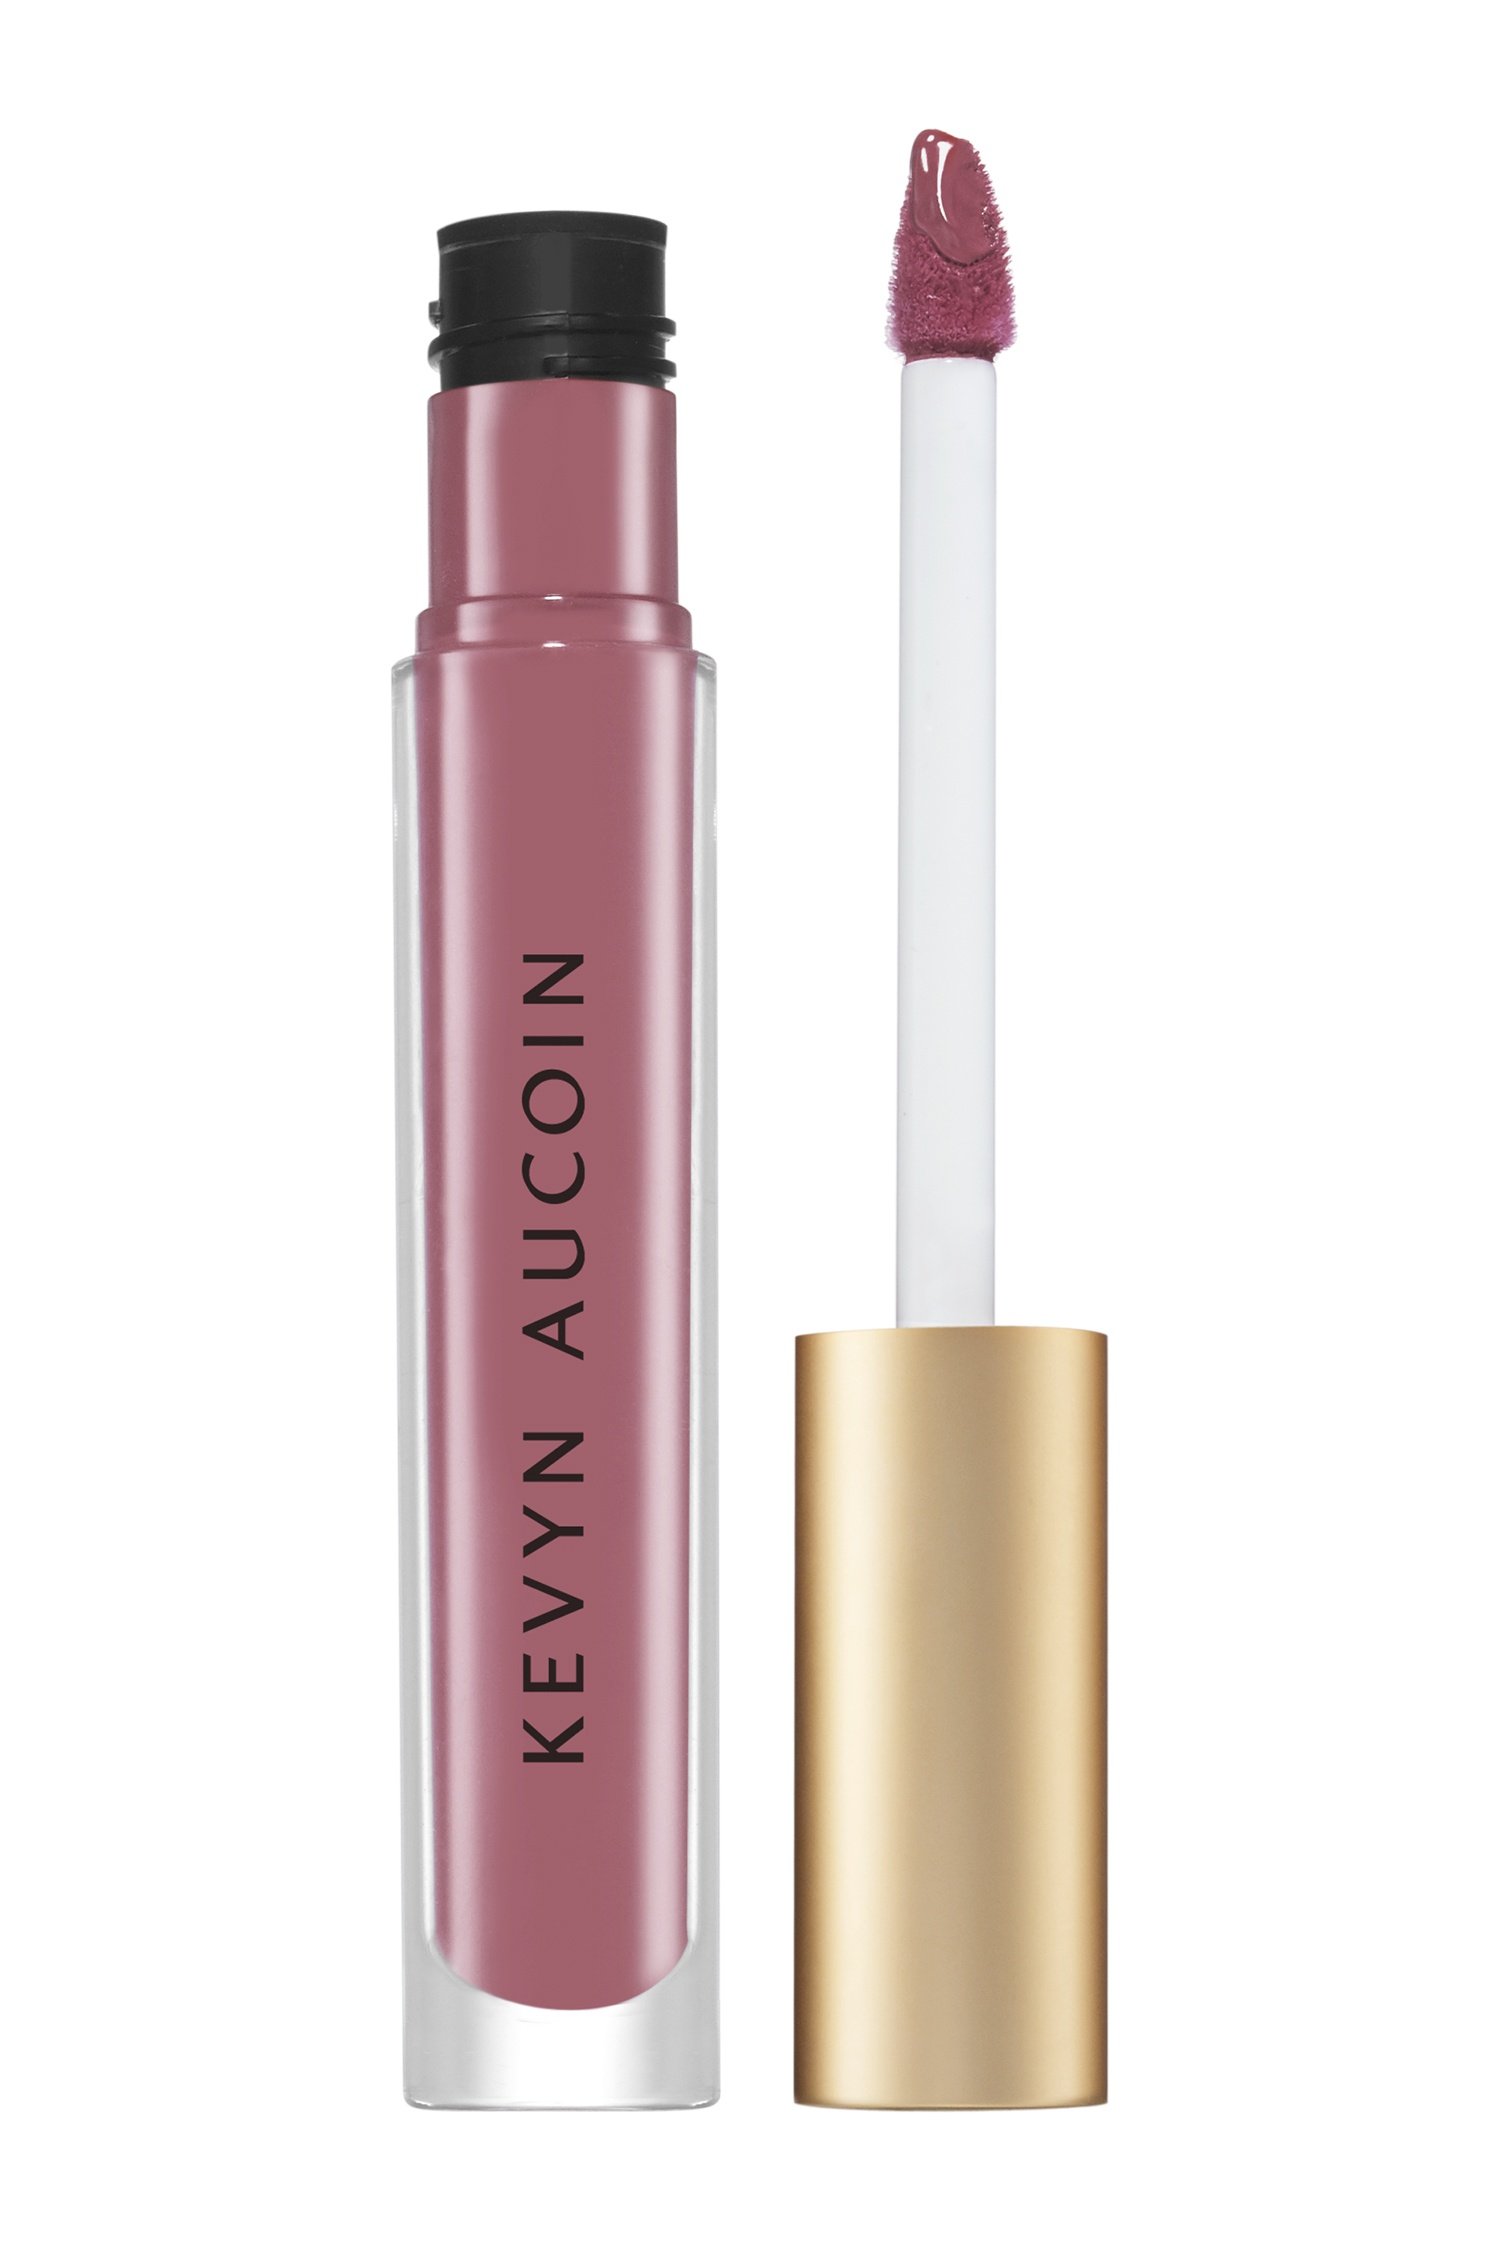 The Molten Lip Color - Molten Mattes - Жидкая матовая помада - Dolly, 4 ml Kevyn Aucoin (фото)